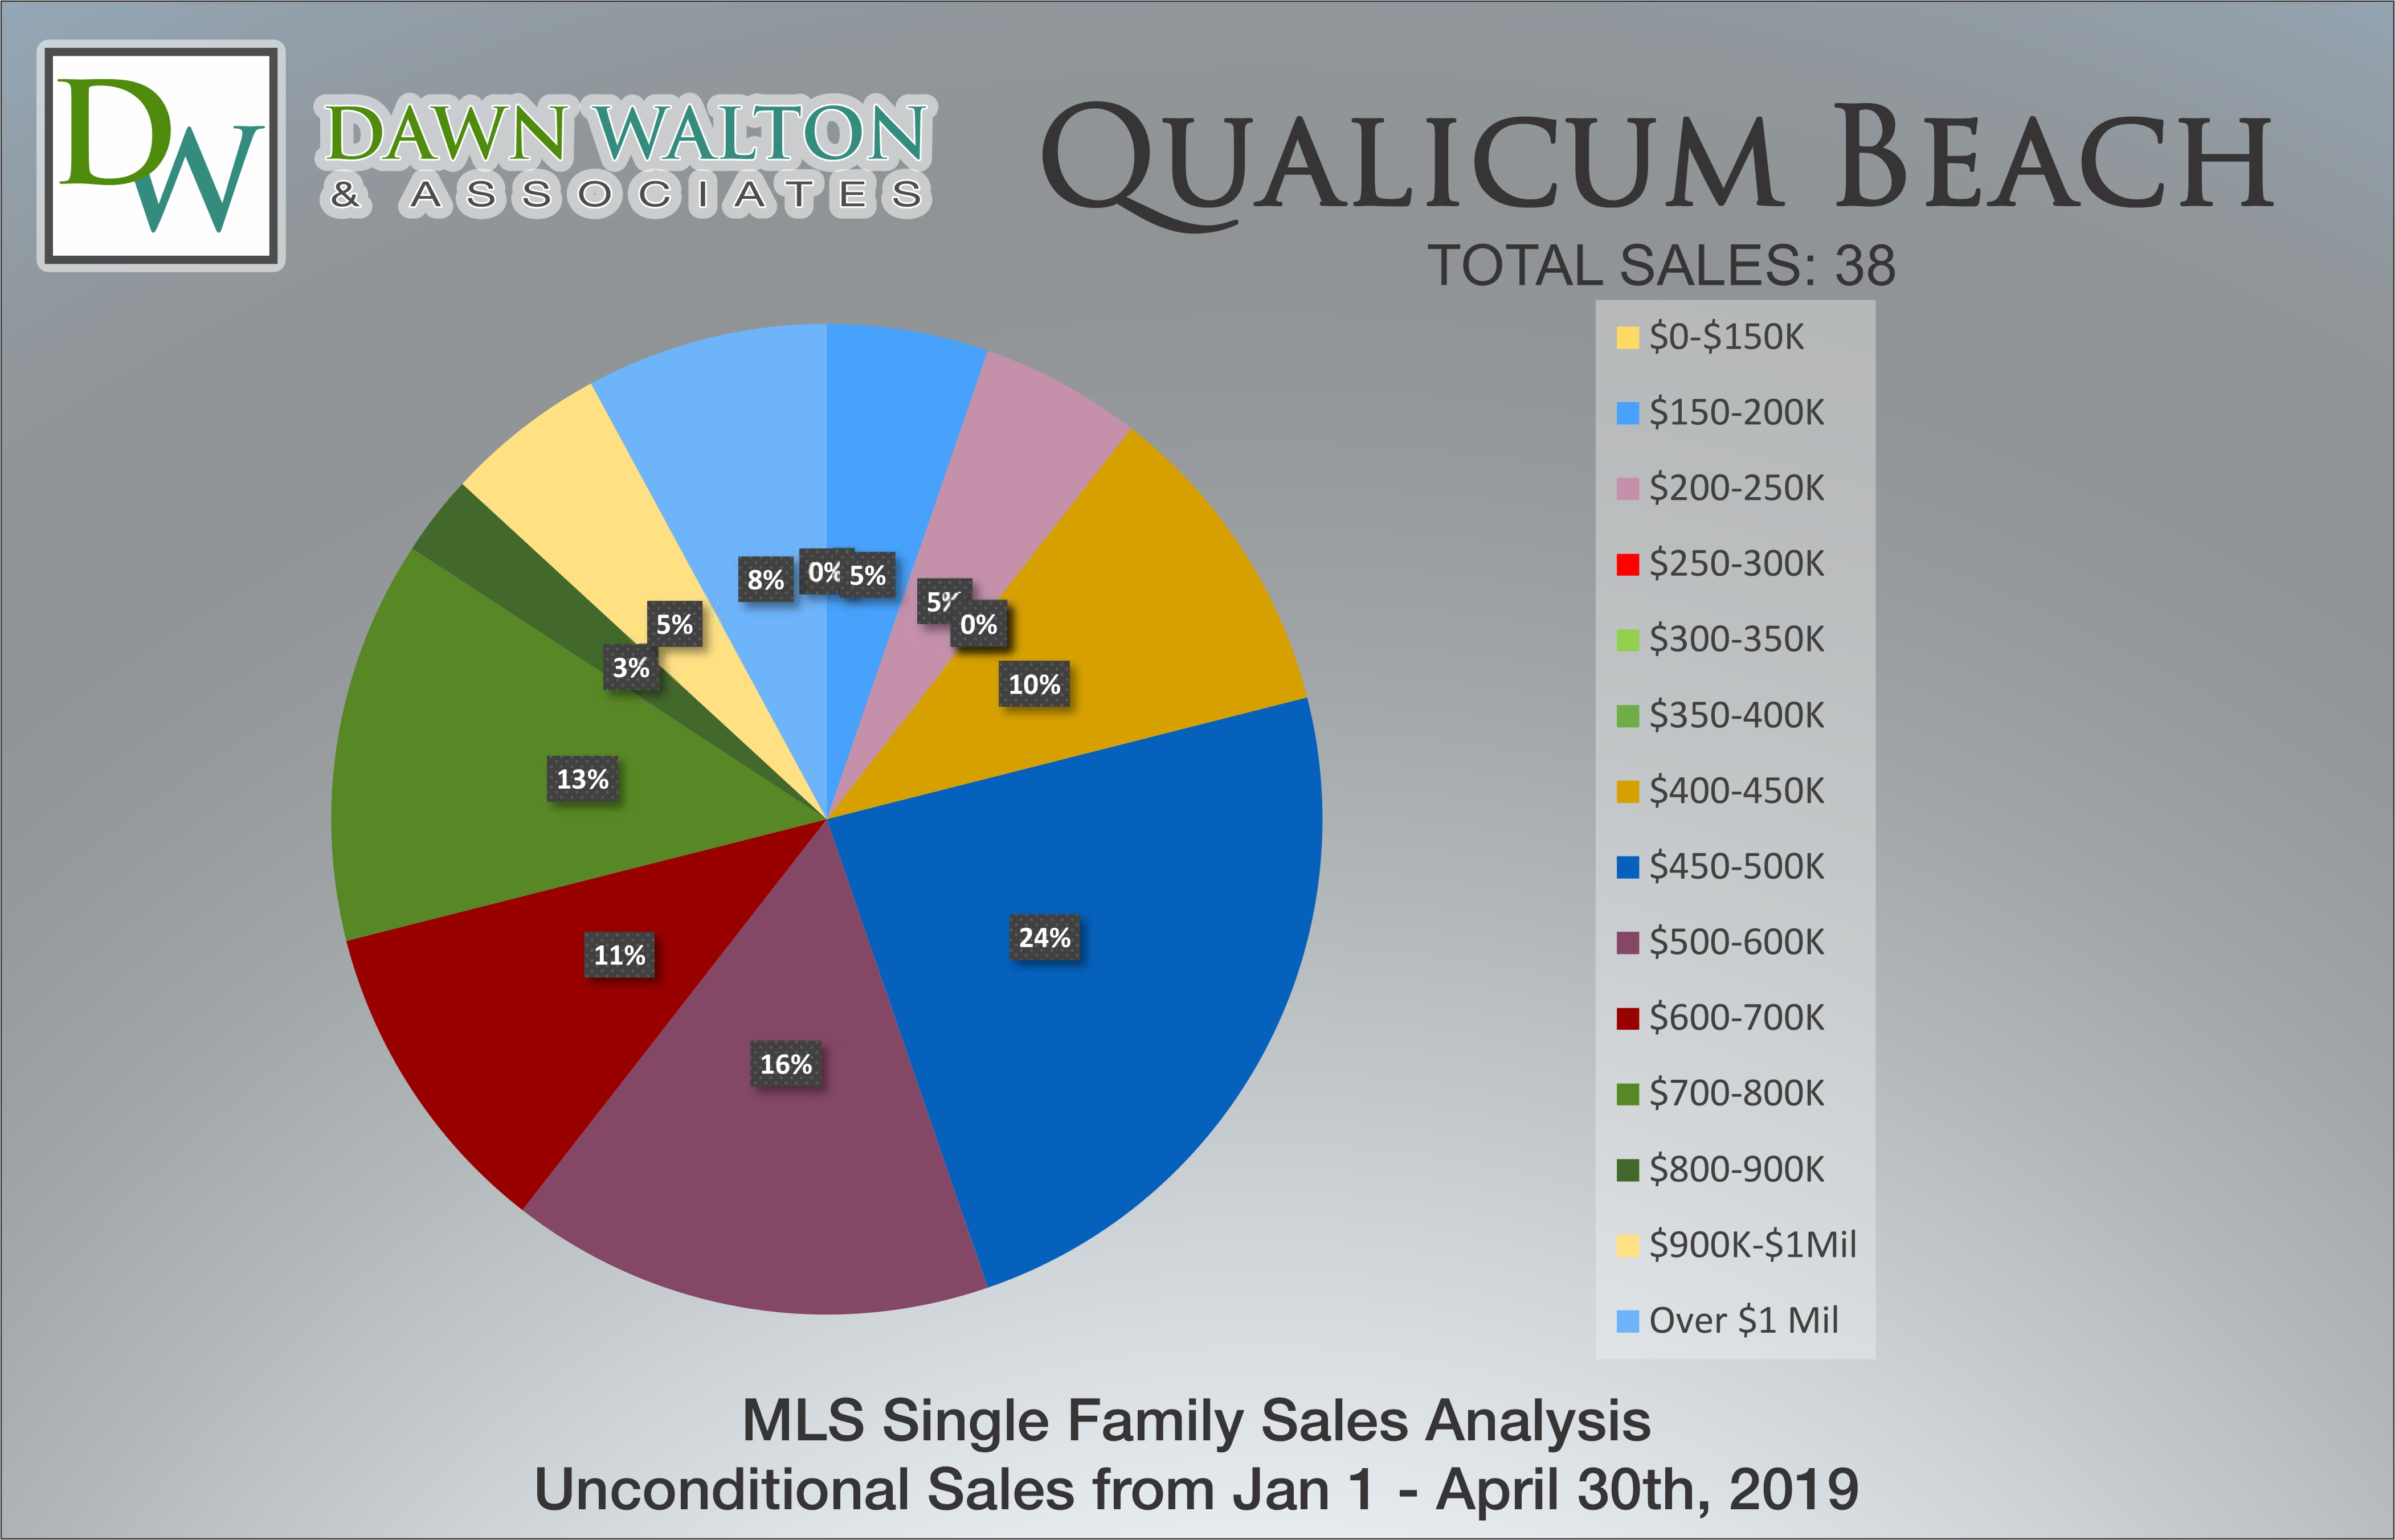 Qualicum Beach Real Estate Market Stats Price Percentage Jan 1 - April 30, 2019 - Nanaimo Realtor Dawn Walton